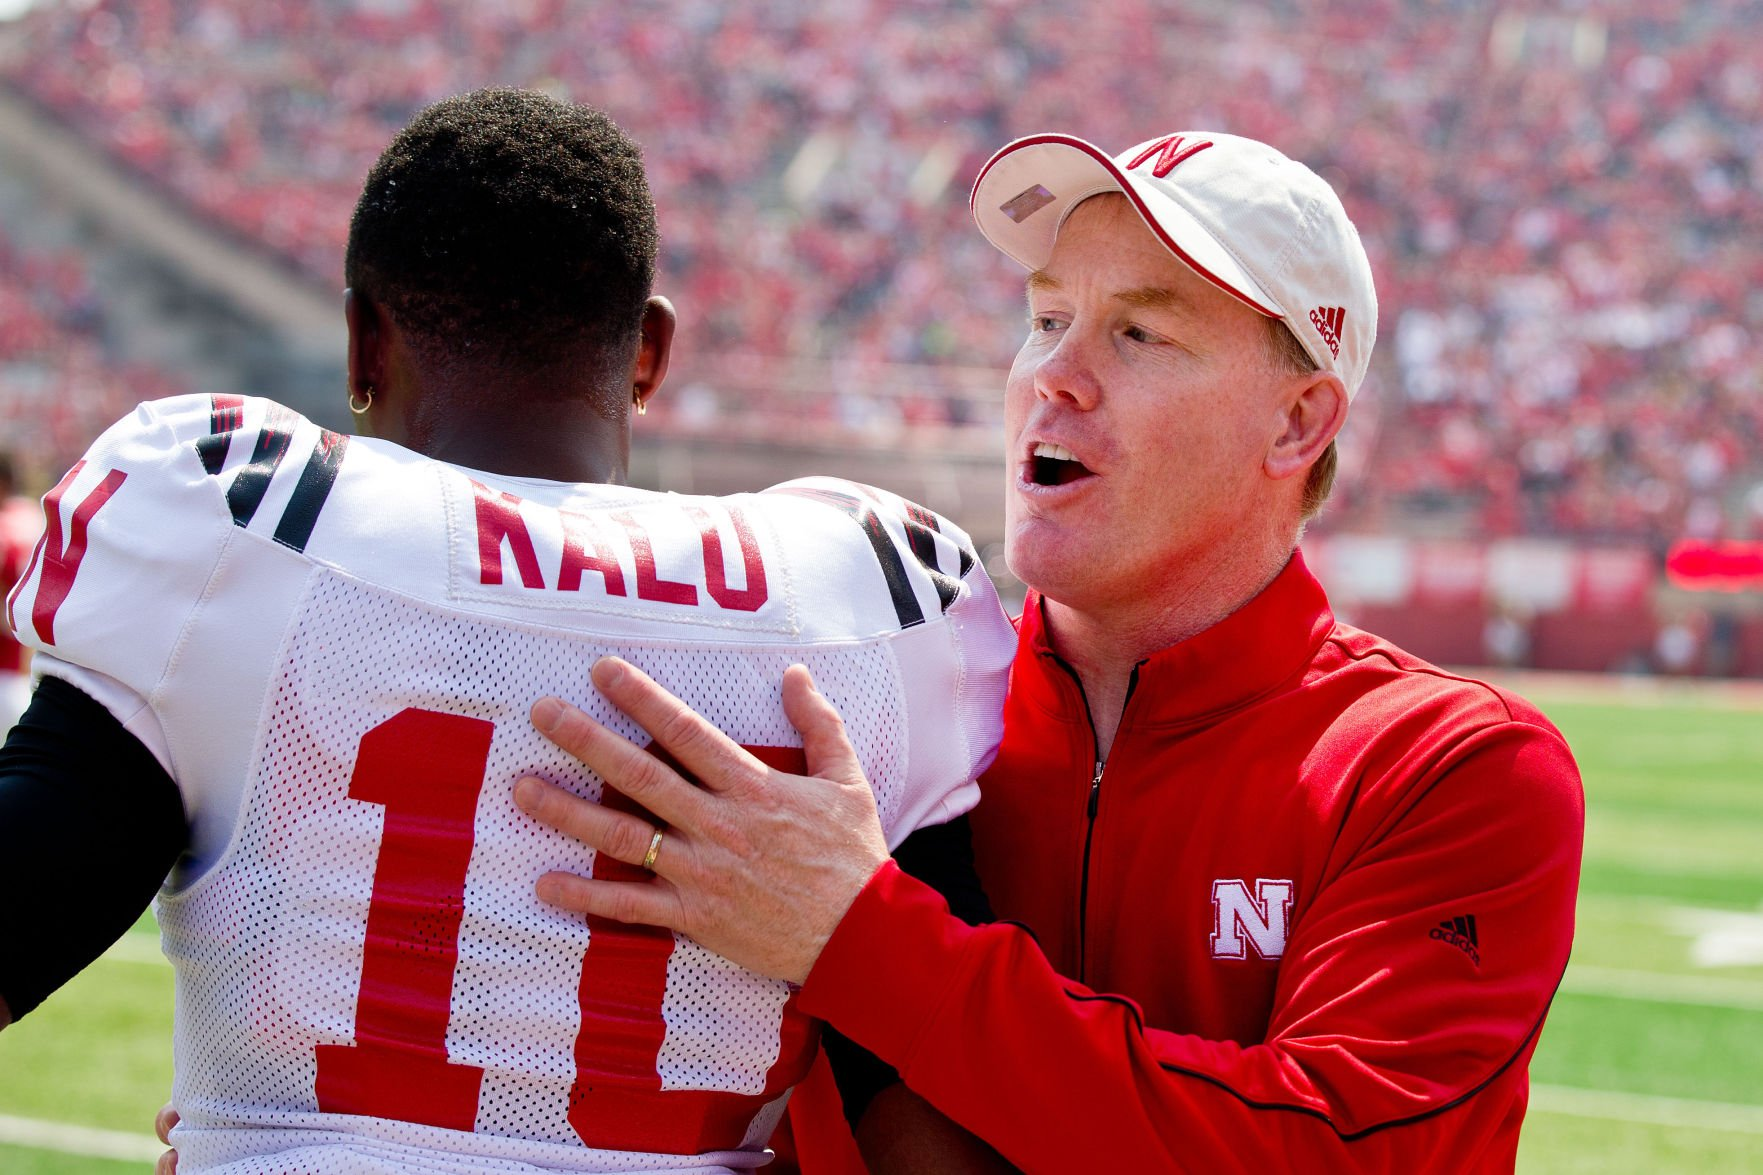 Eichorst out as Nebraska AD